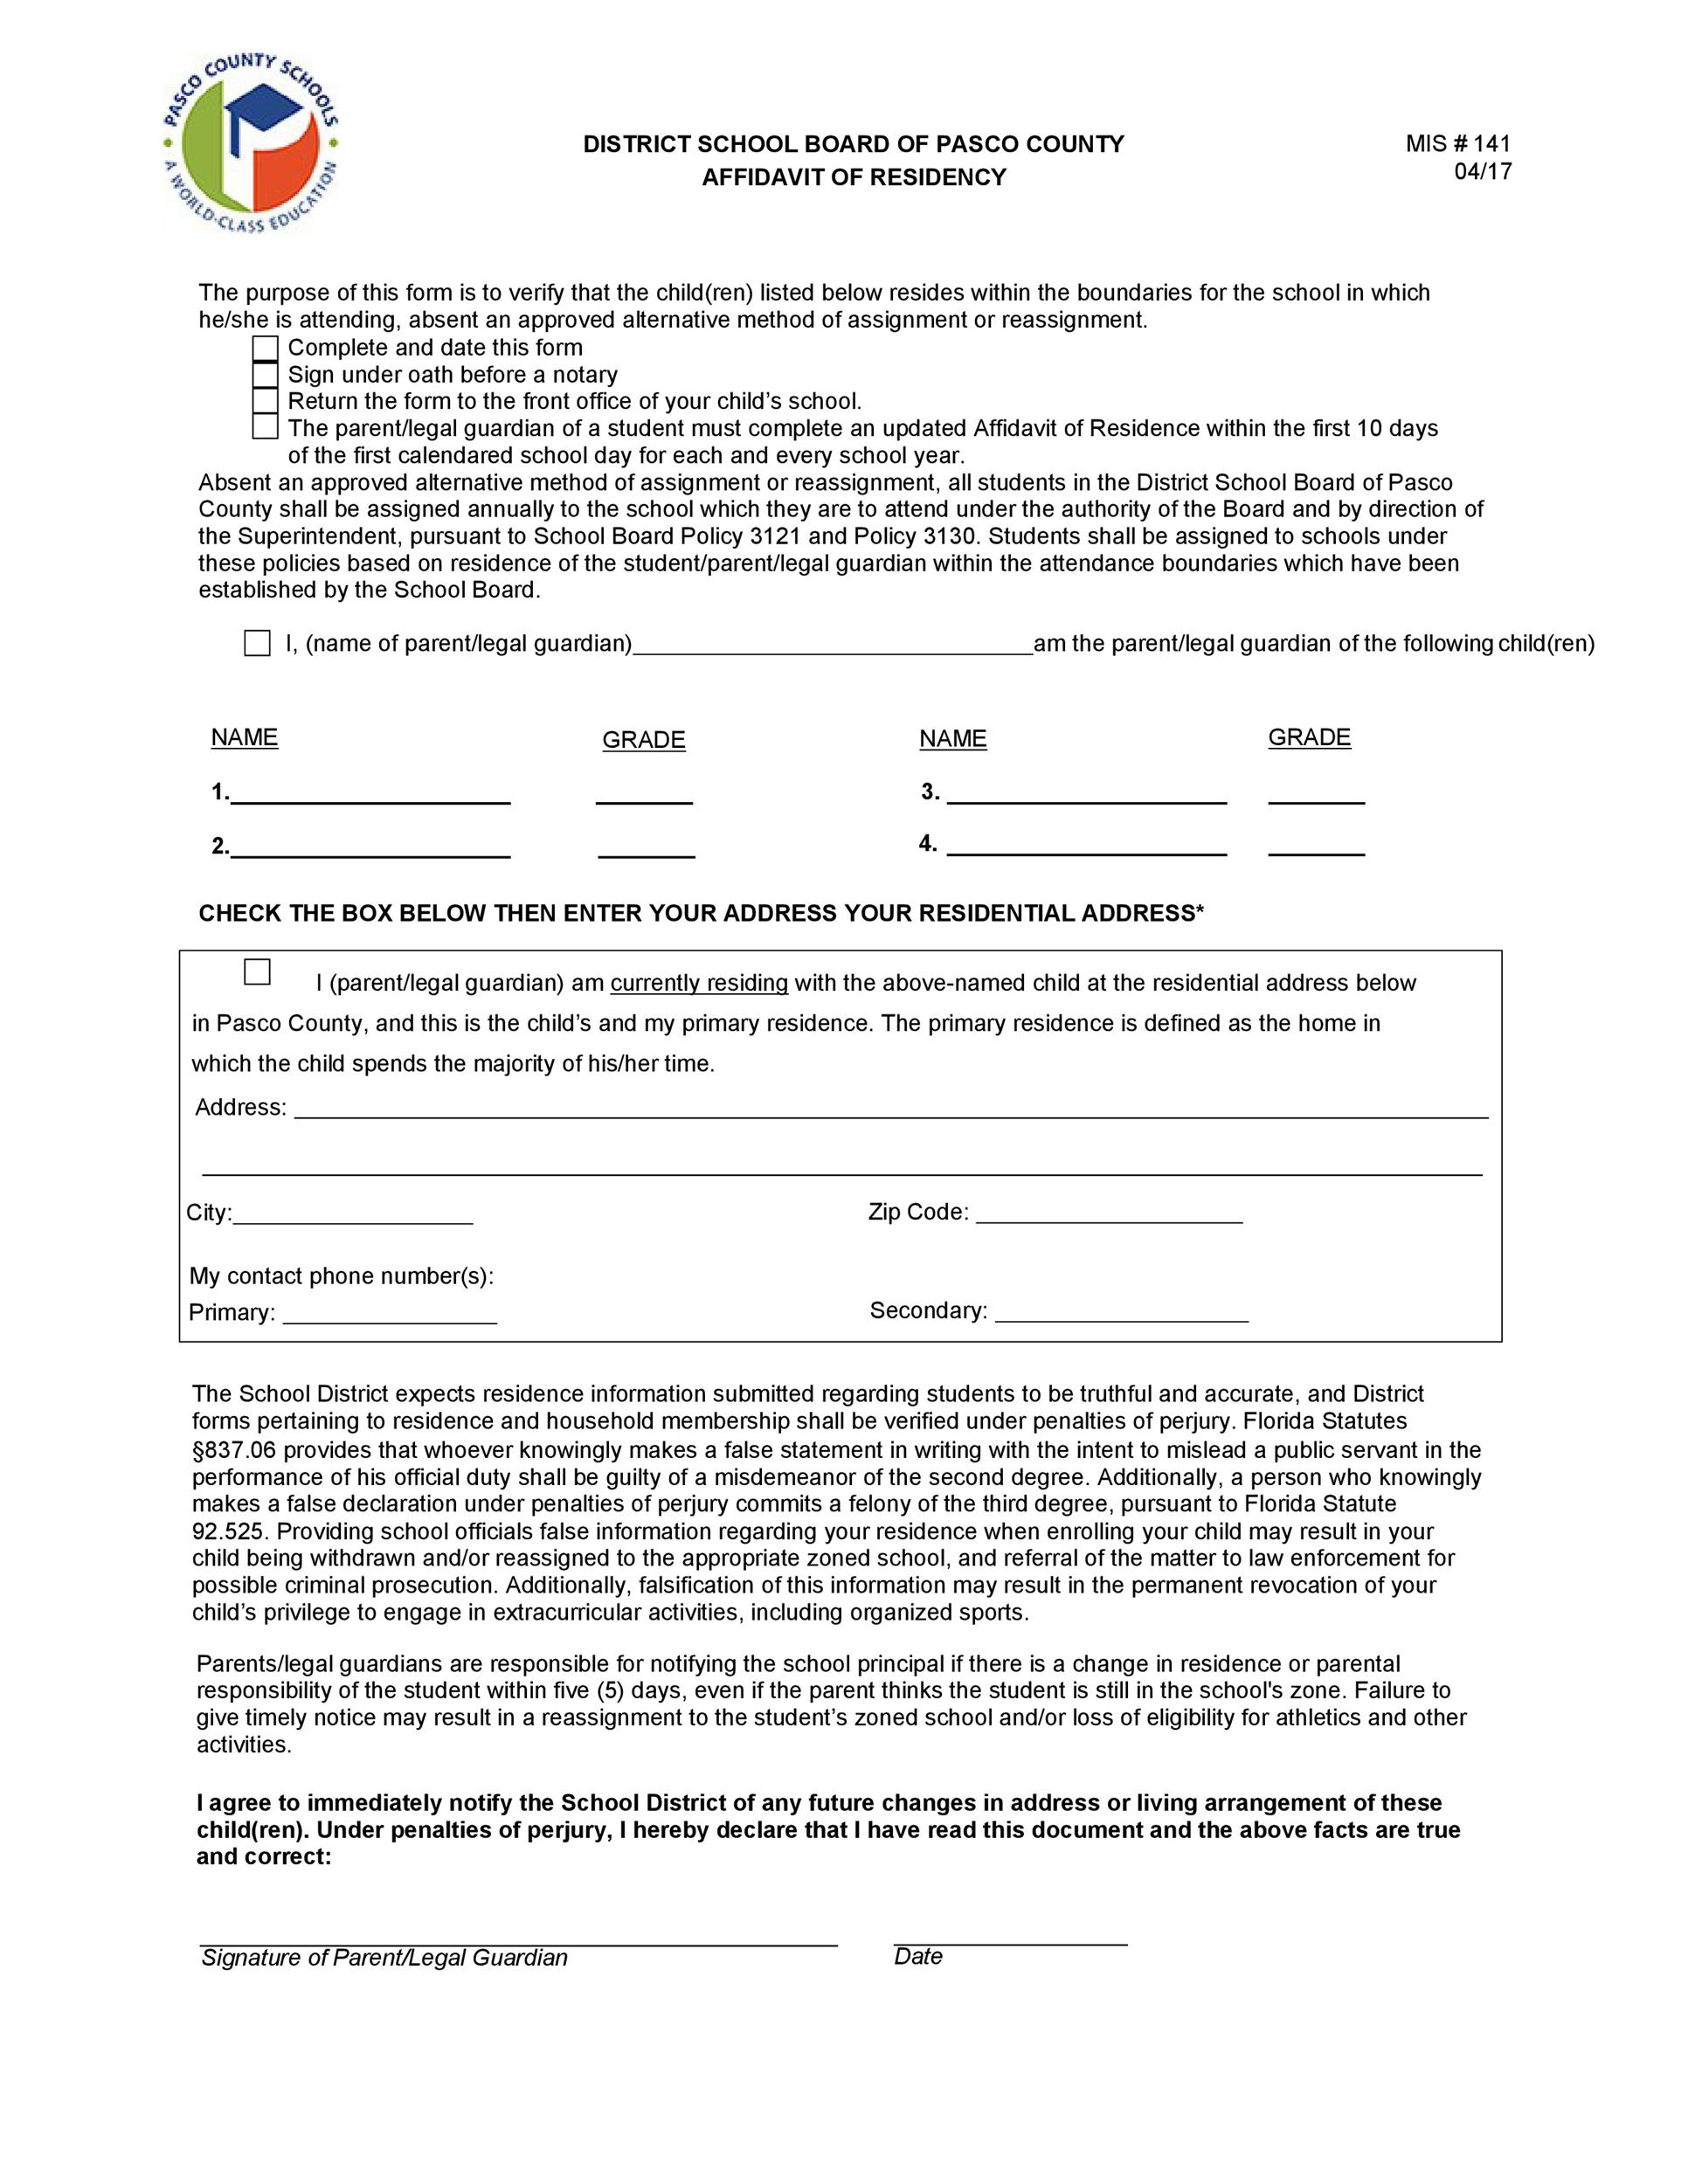 Free proof of residency letter 30